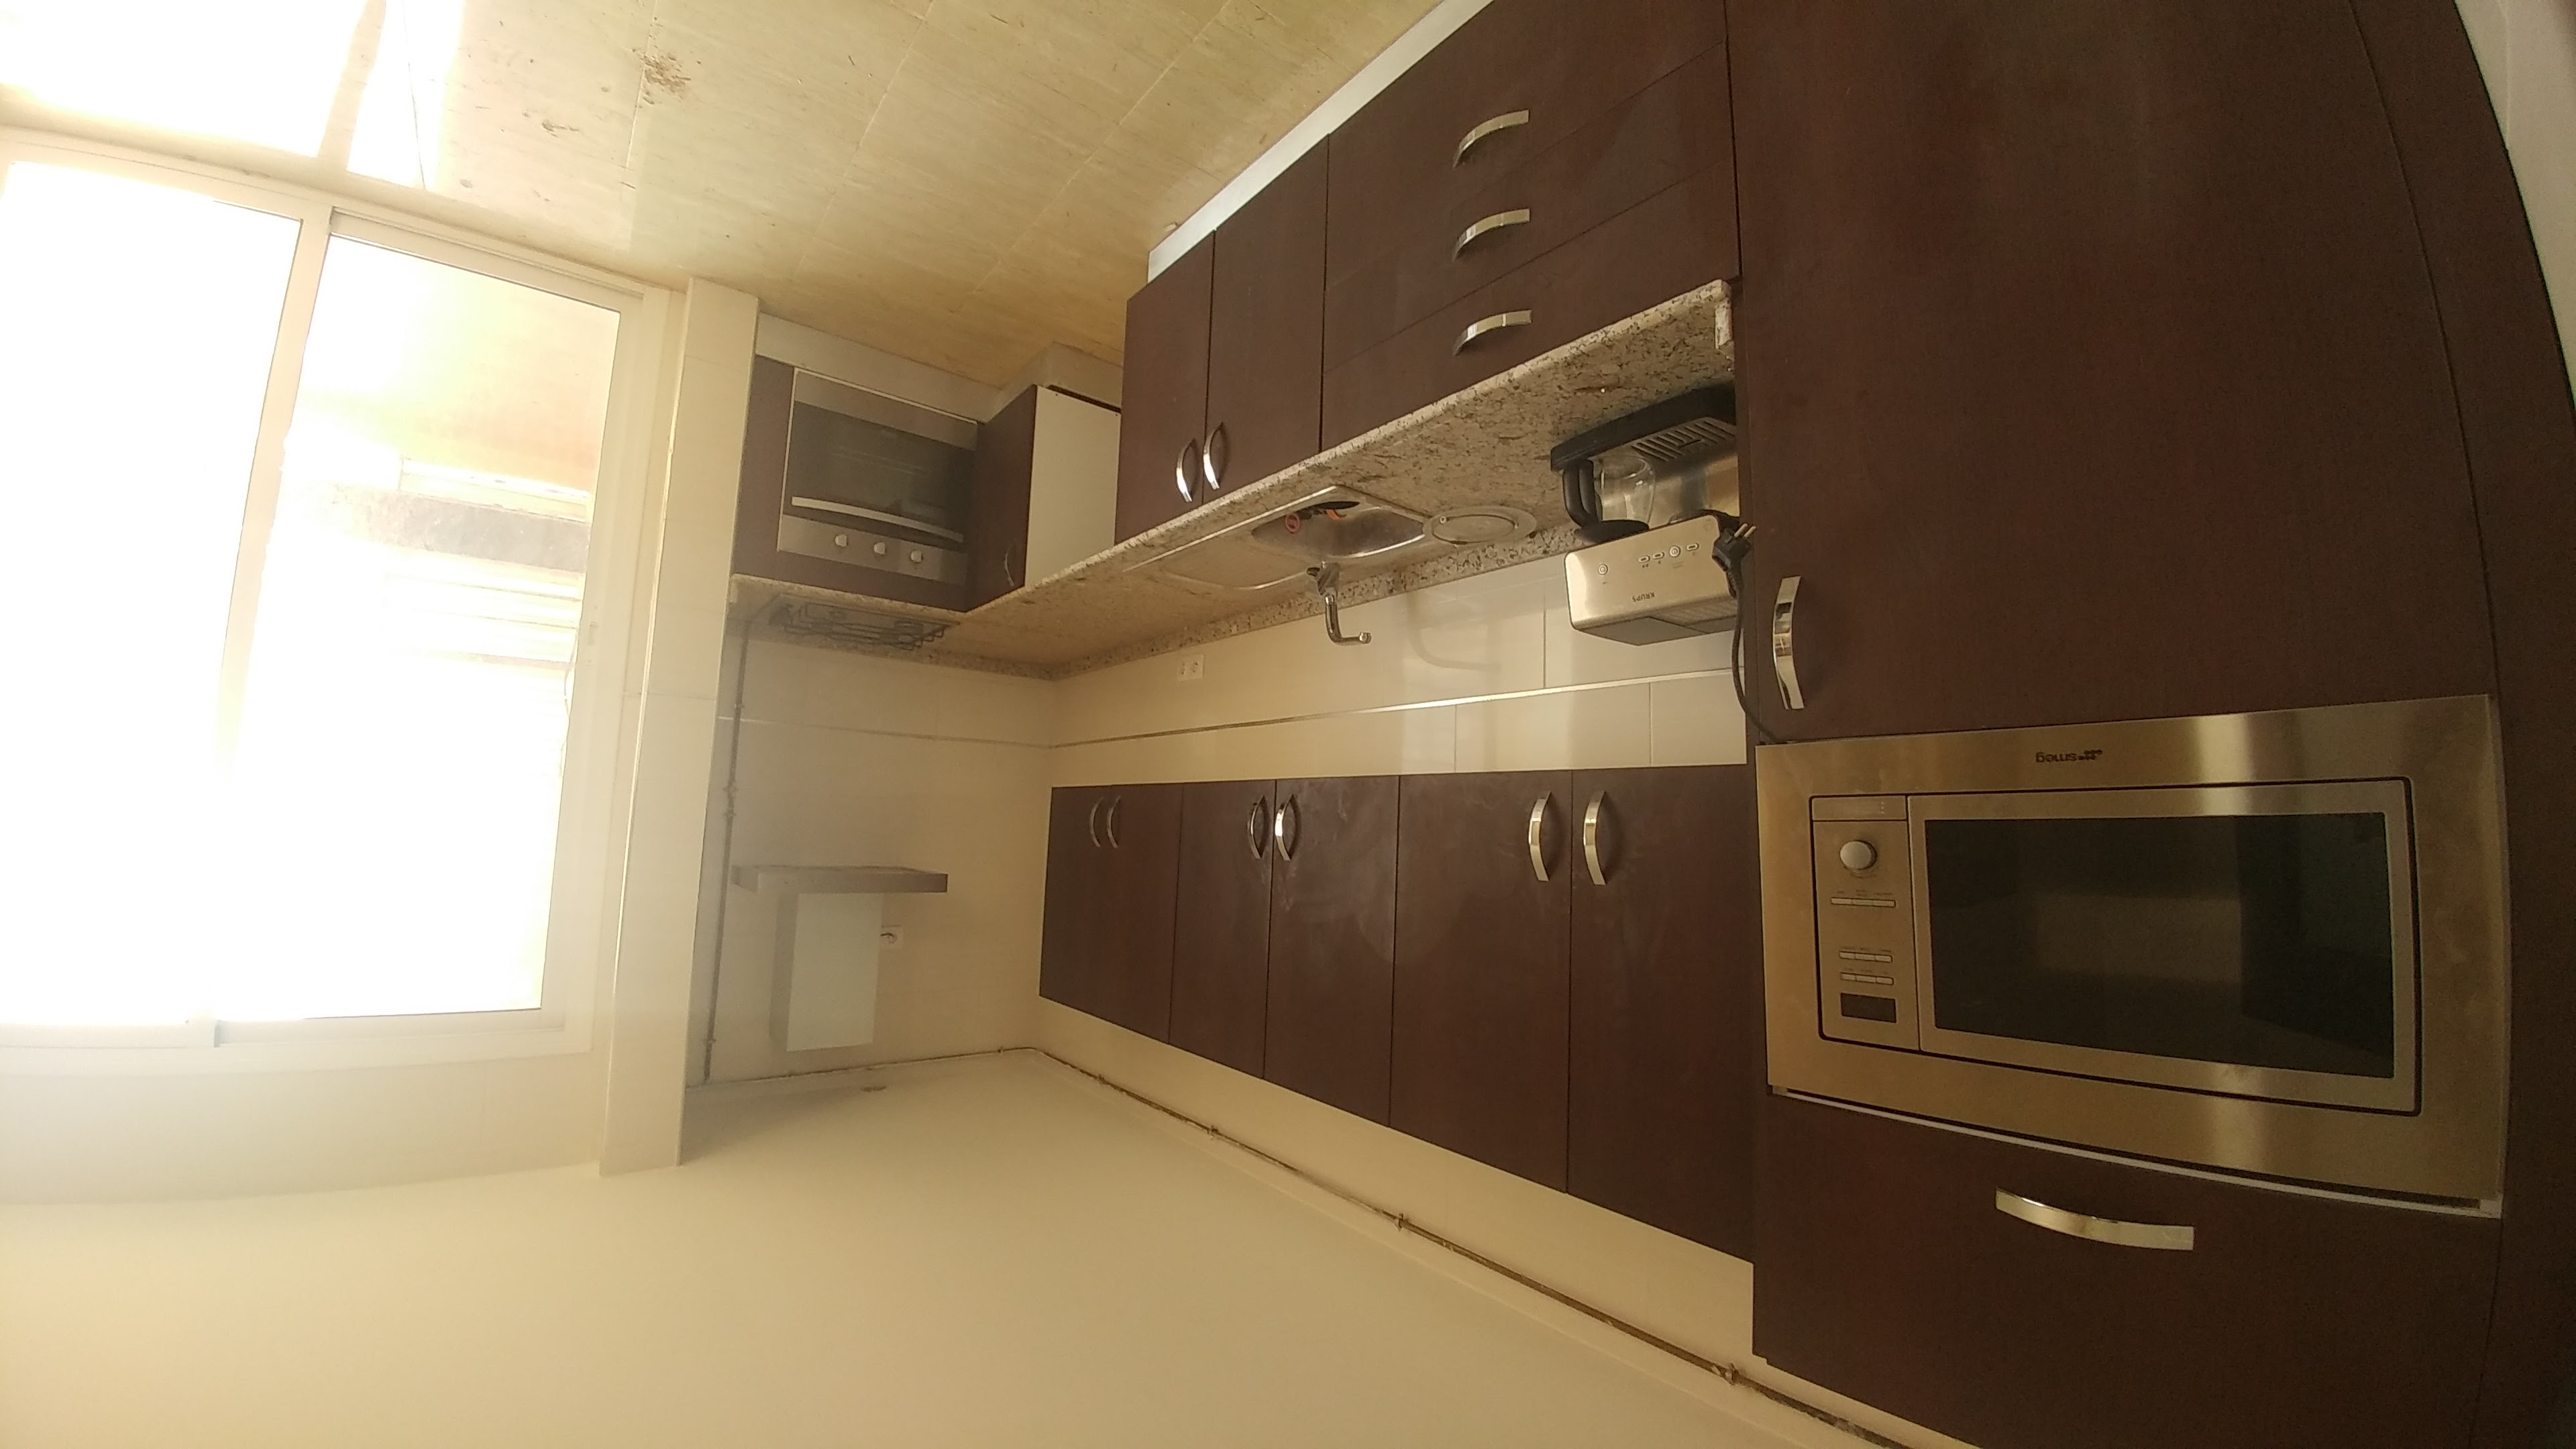 Location appartement type F4 avec garage sous sol ouedkniss